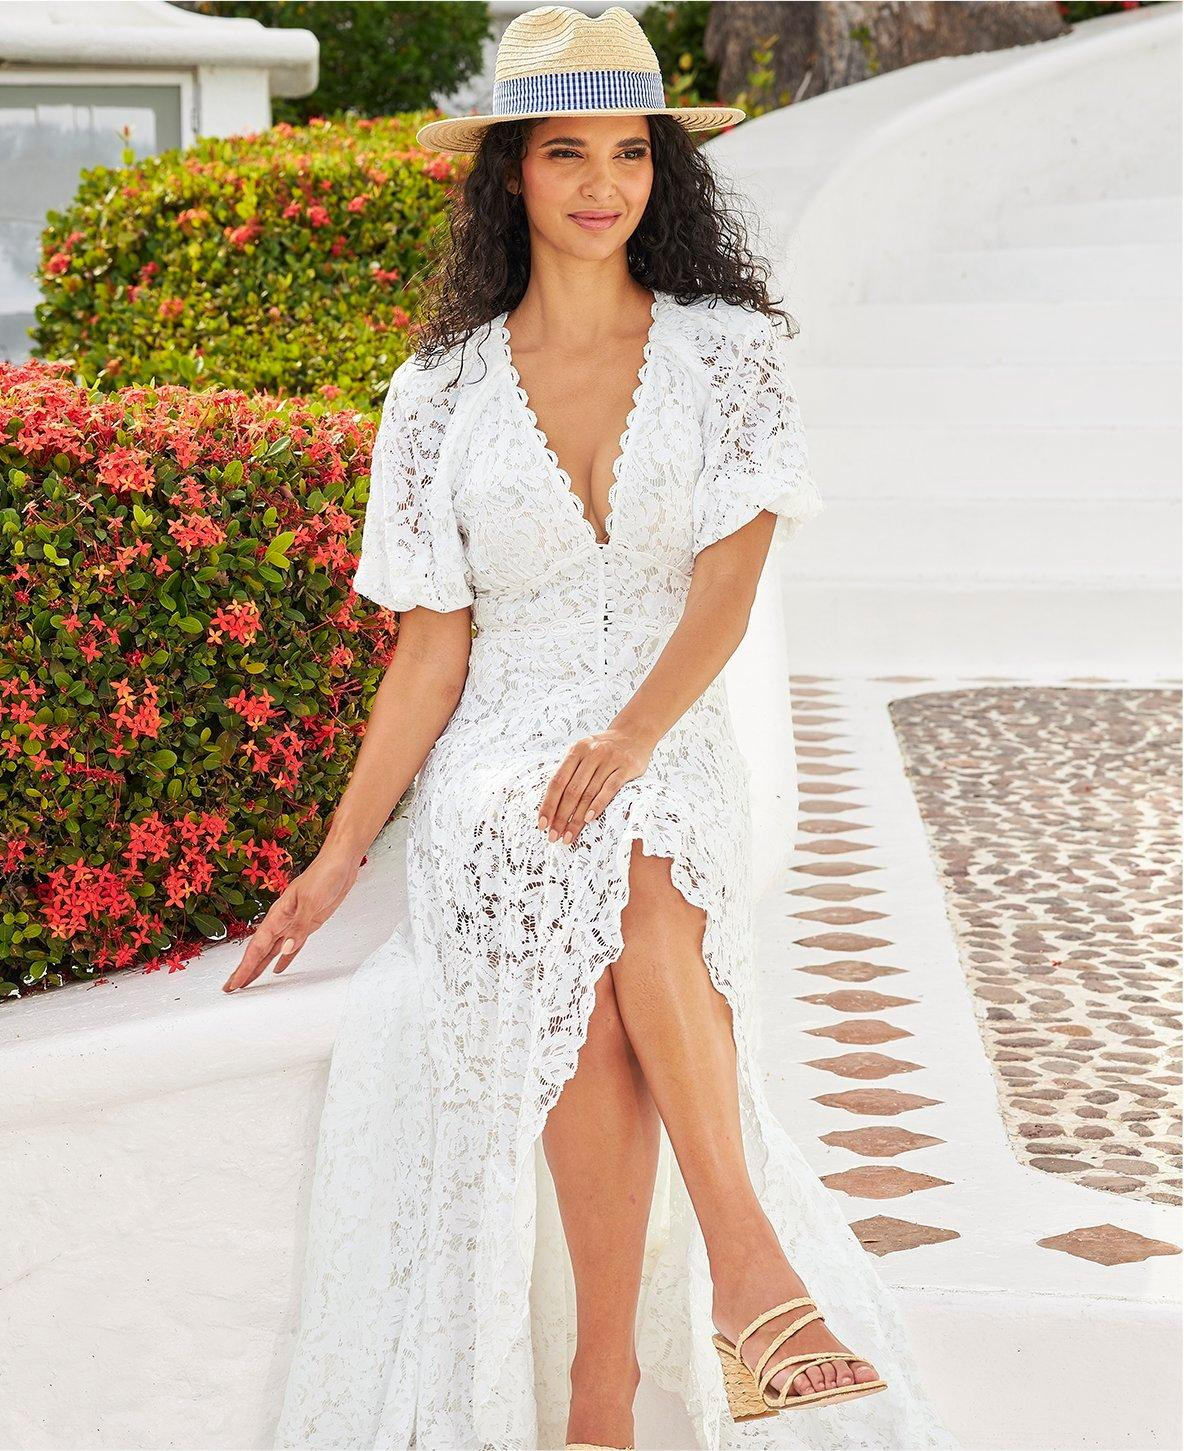 model wearing a white lace v-neck short sleeve high-low maxi dress and a straw hat with a navy gingham ribbon.